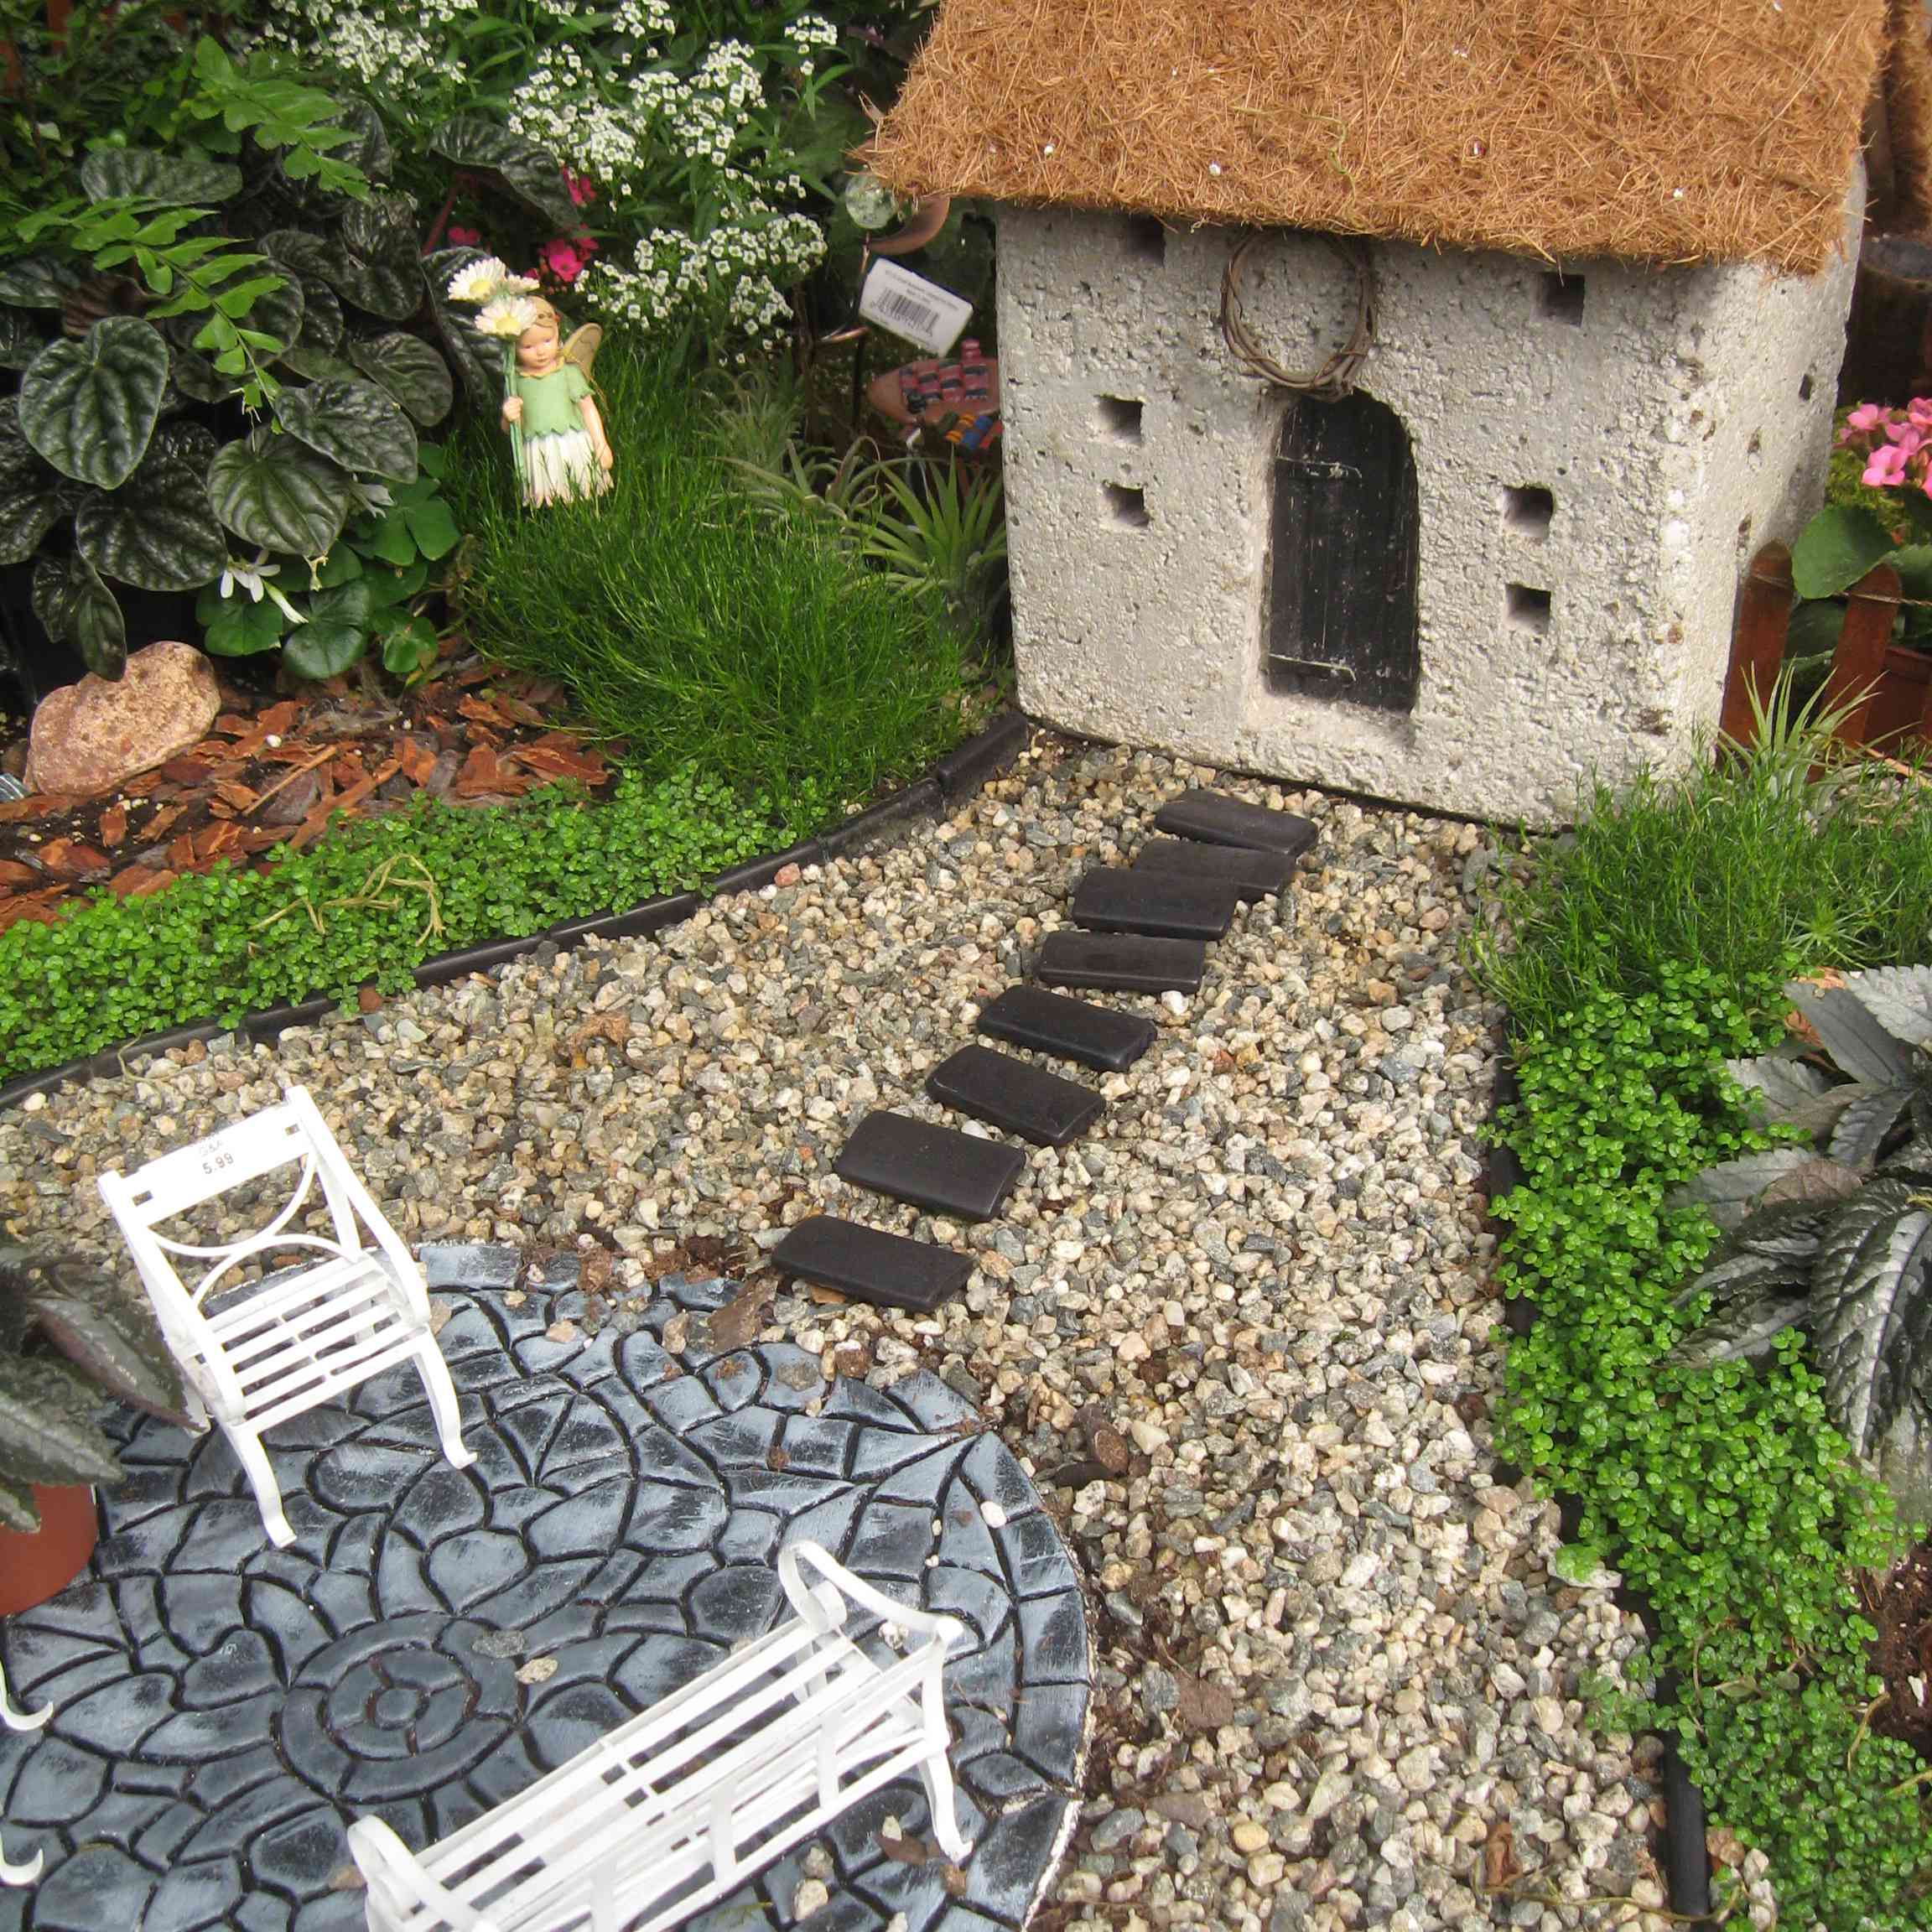 Miniature house and furniture in fairy garden.